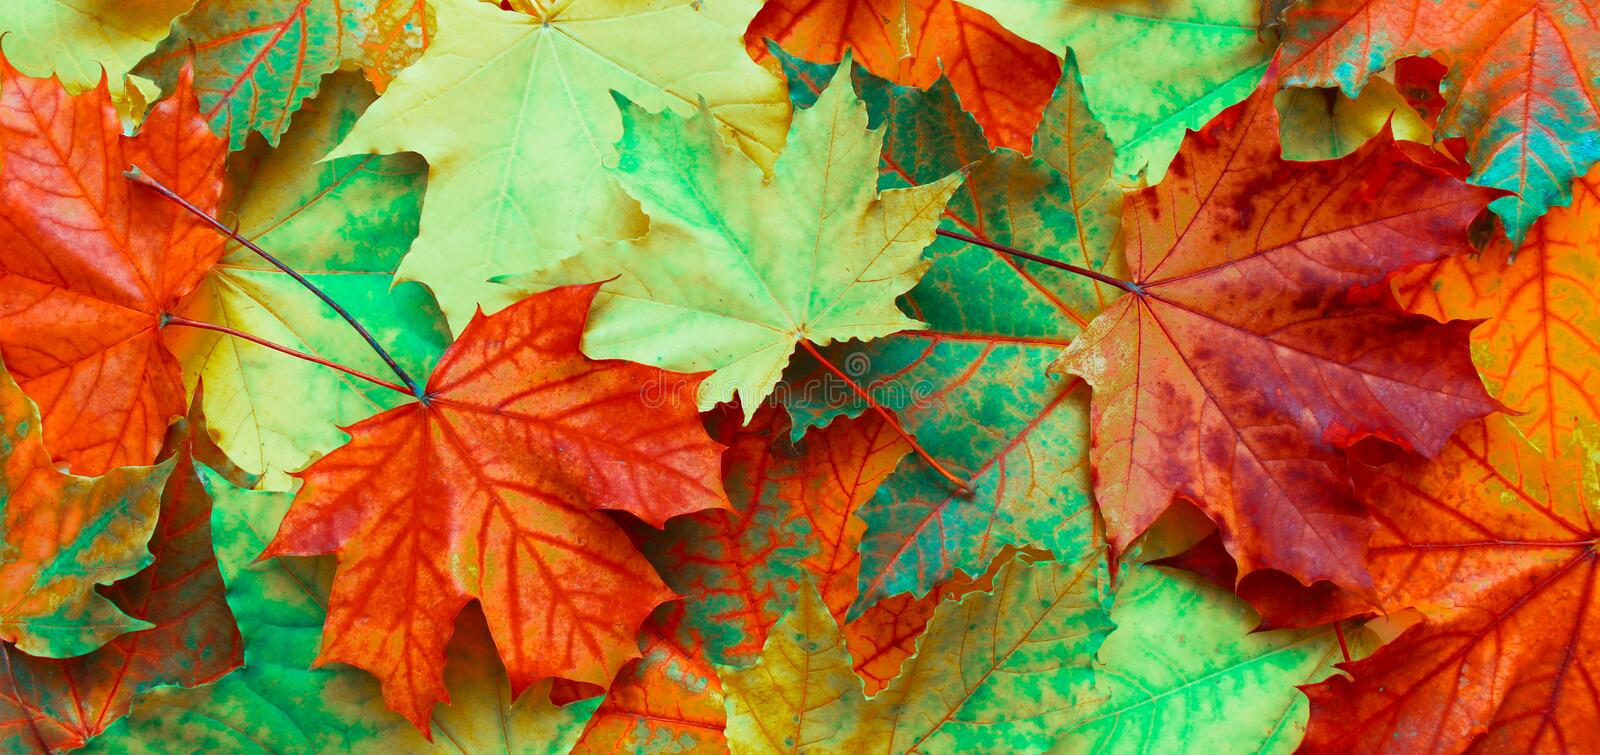 Panoramic Nature autumn Background with fallen maple leaves royalty free stock images